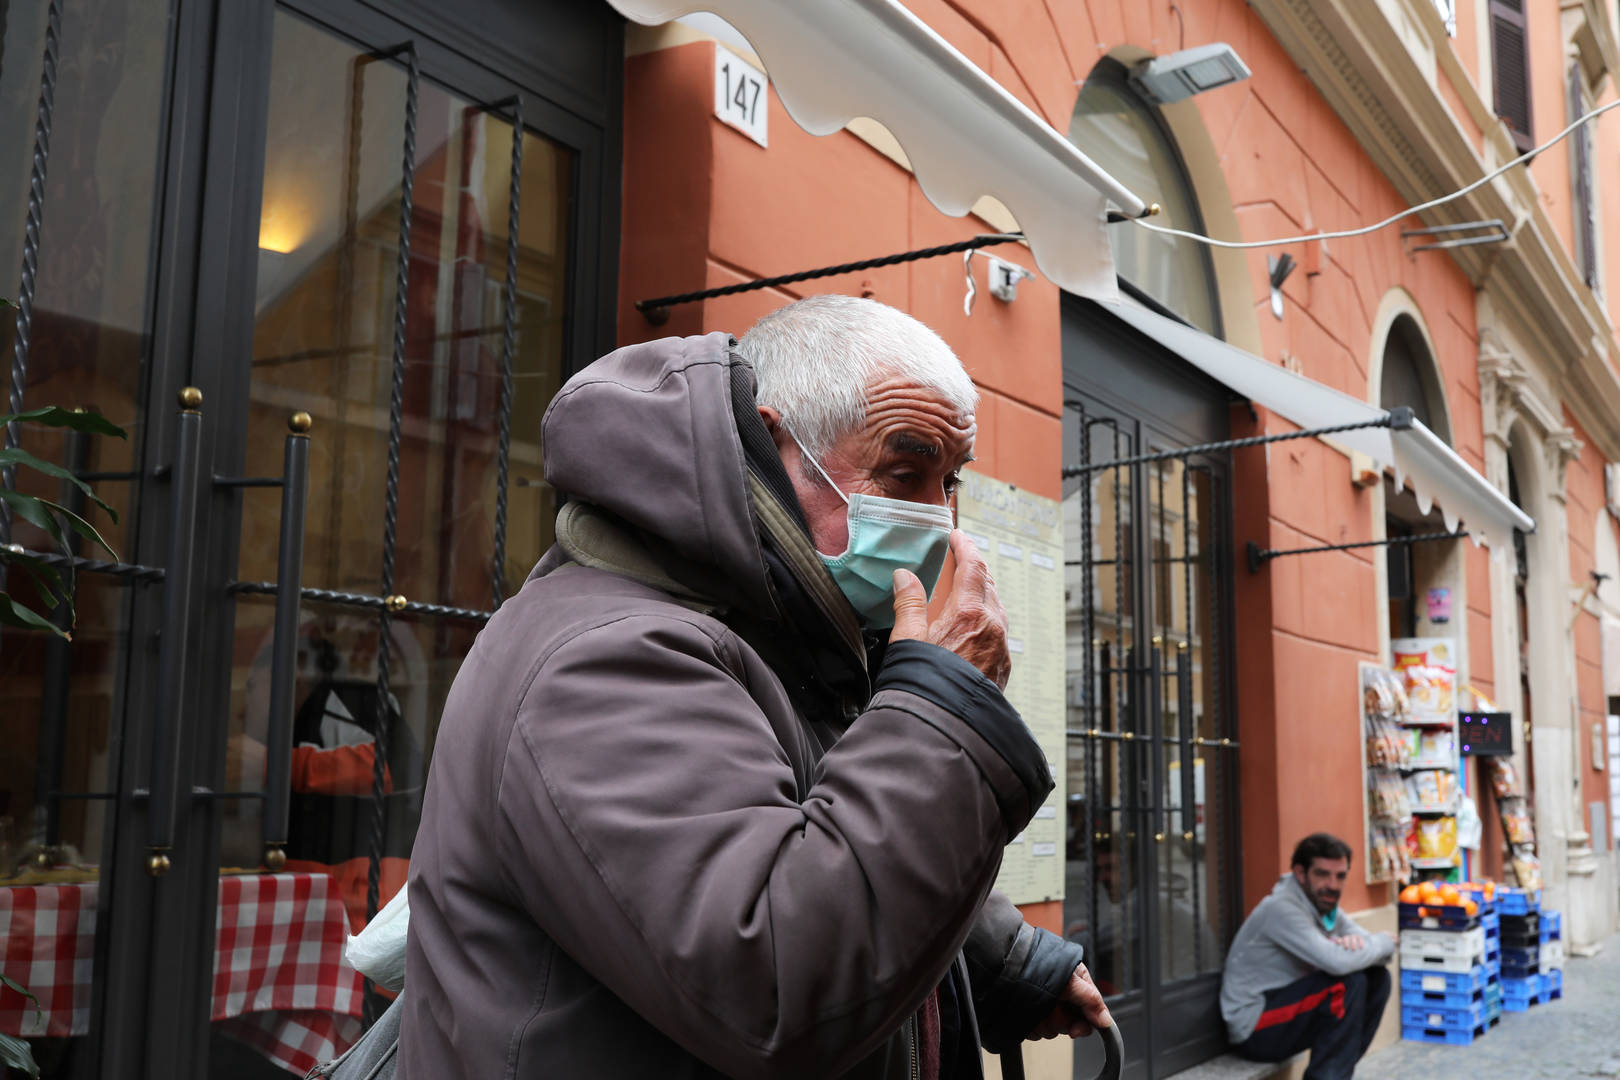 Coronavirus Victims Over 80 In Italy Will Be Left To Die